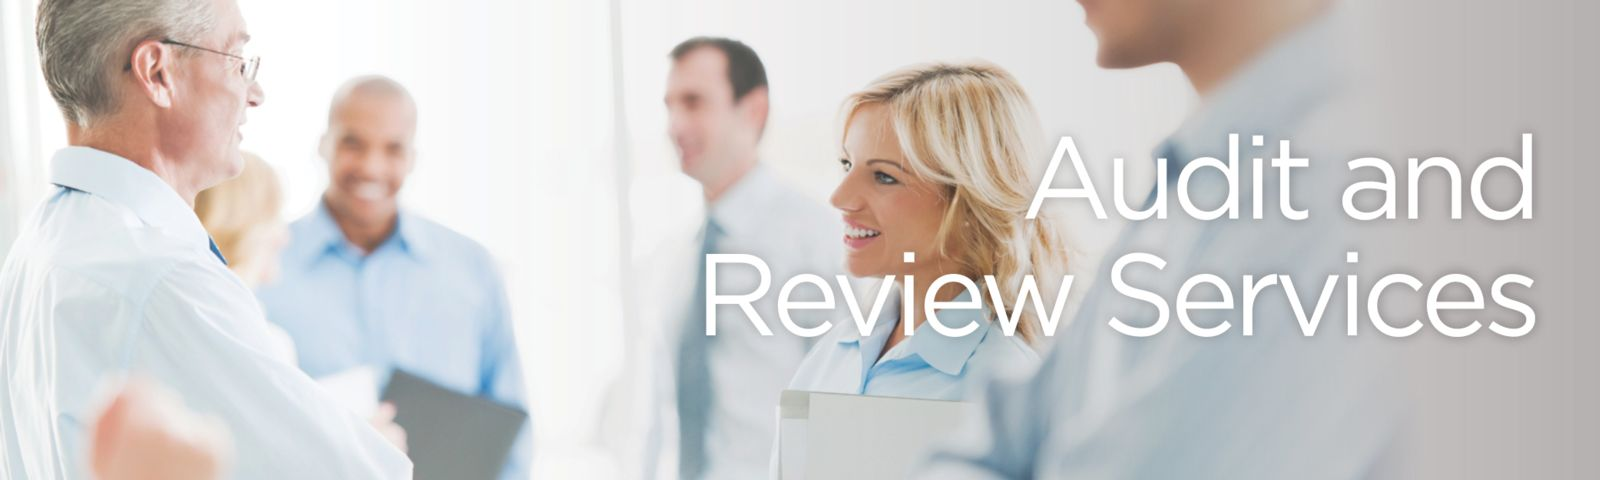 Audit and Review Services